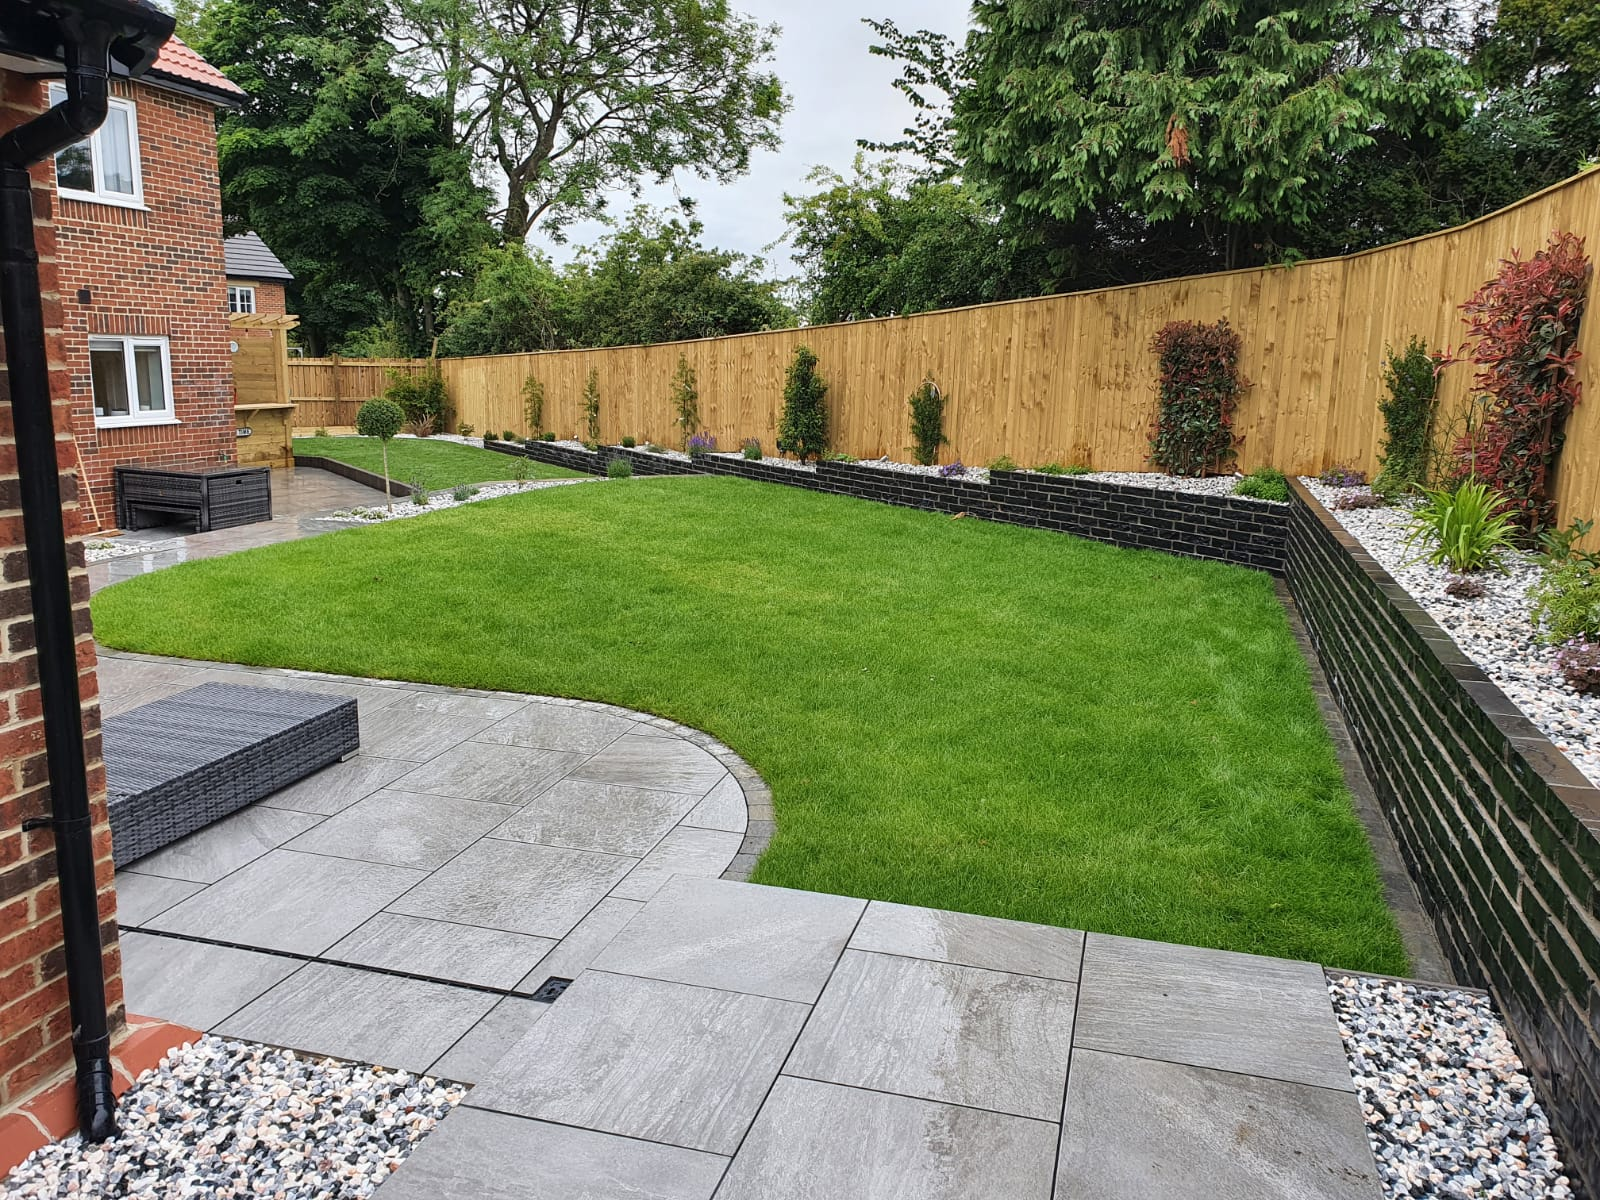 Corner of a garden with grey paving and curved grass